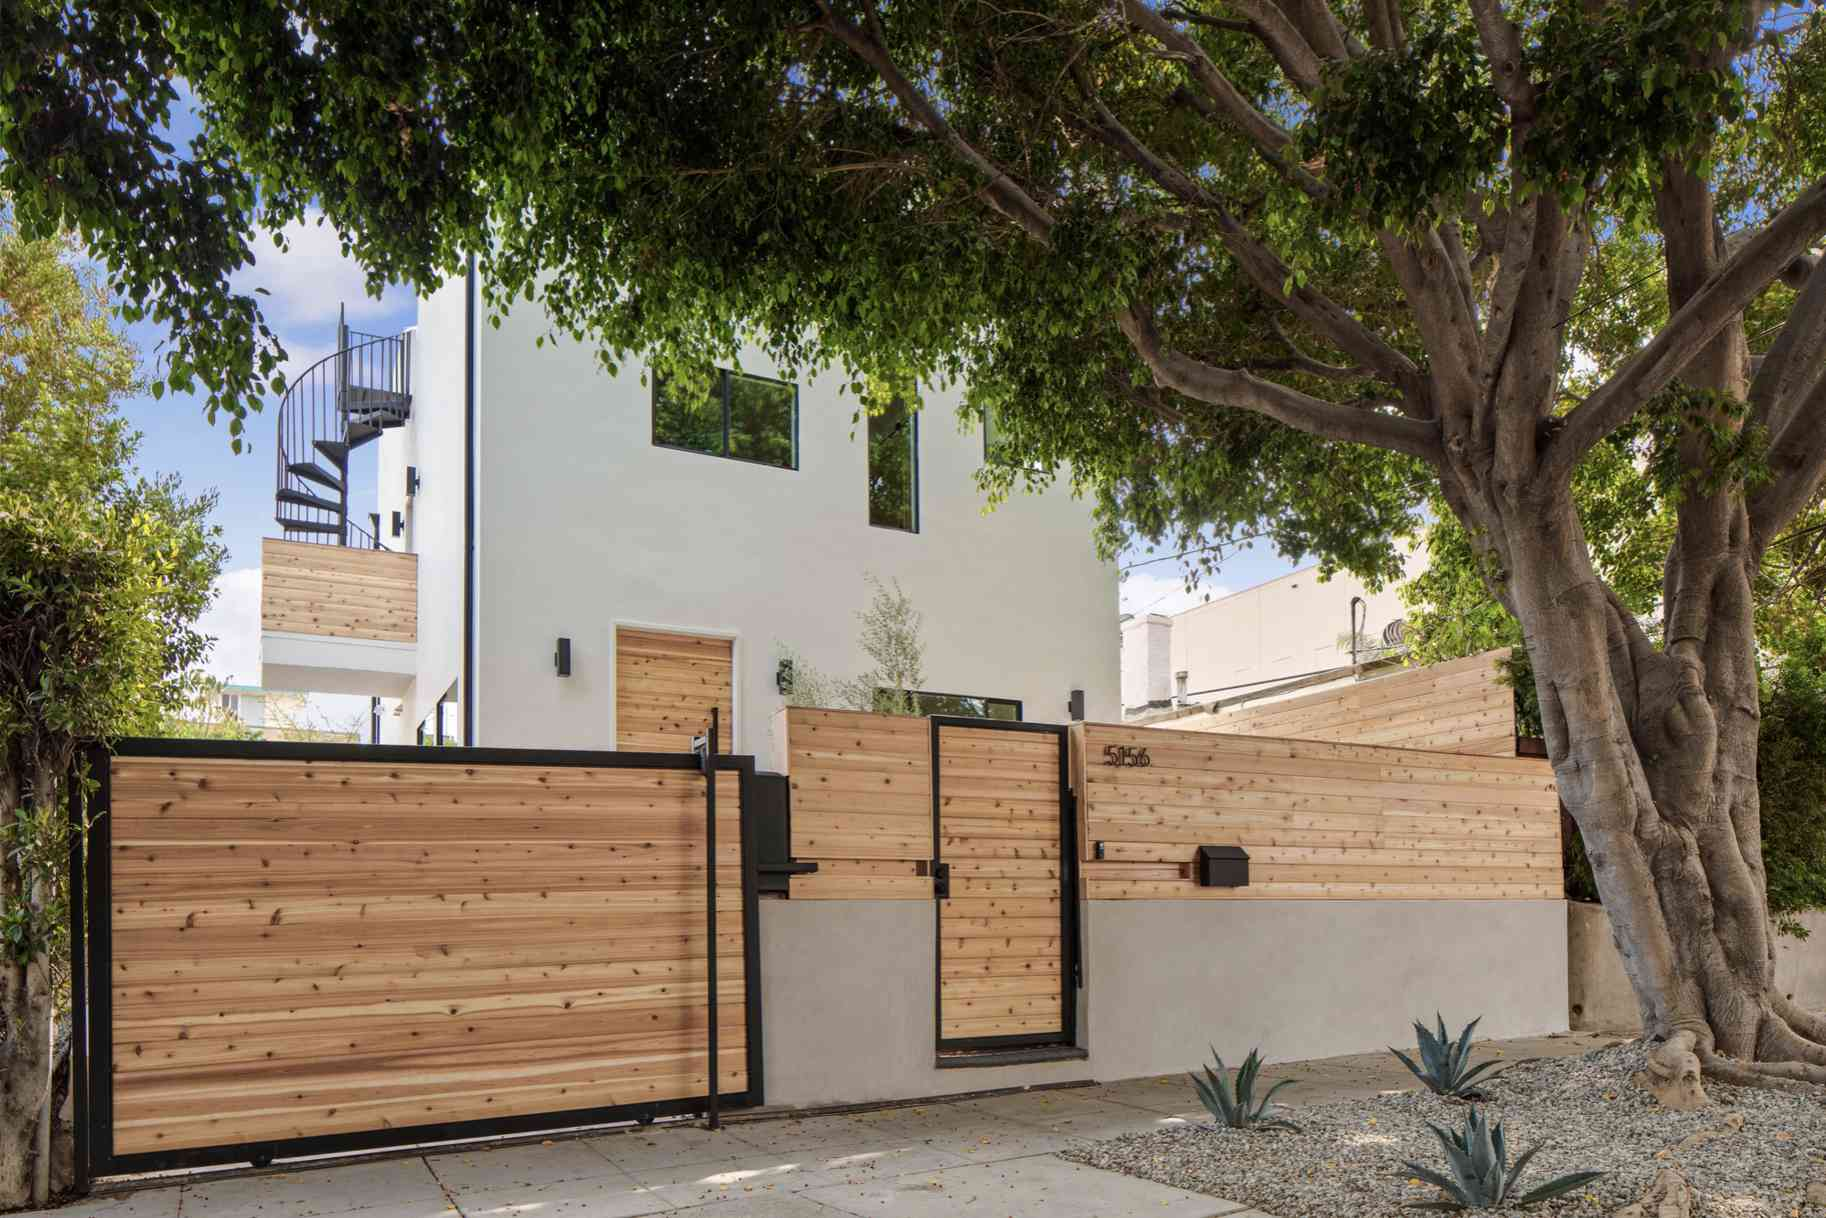 backyard privacy fence made of wood